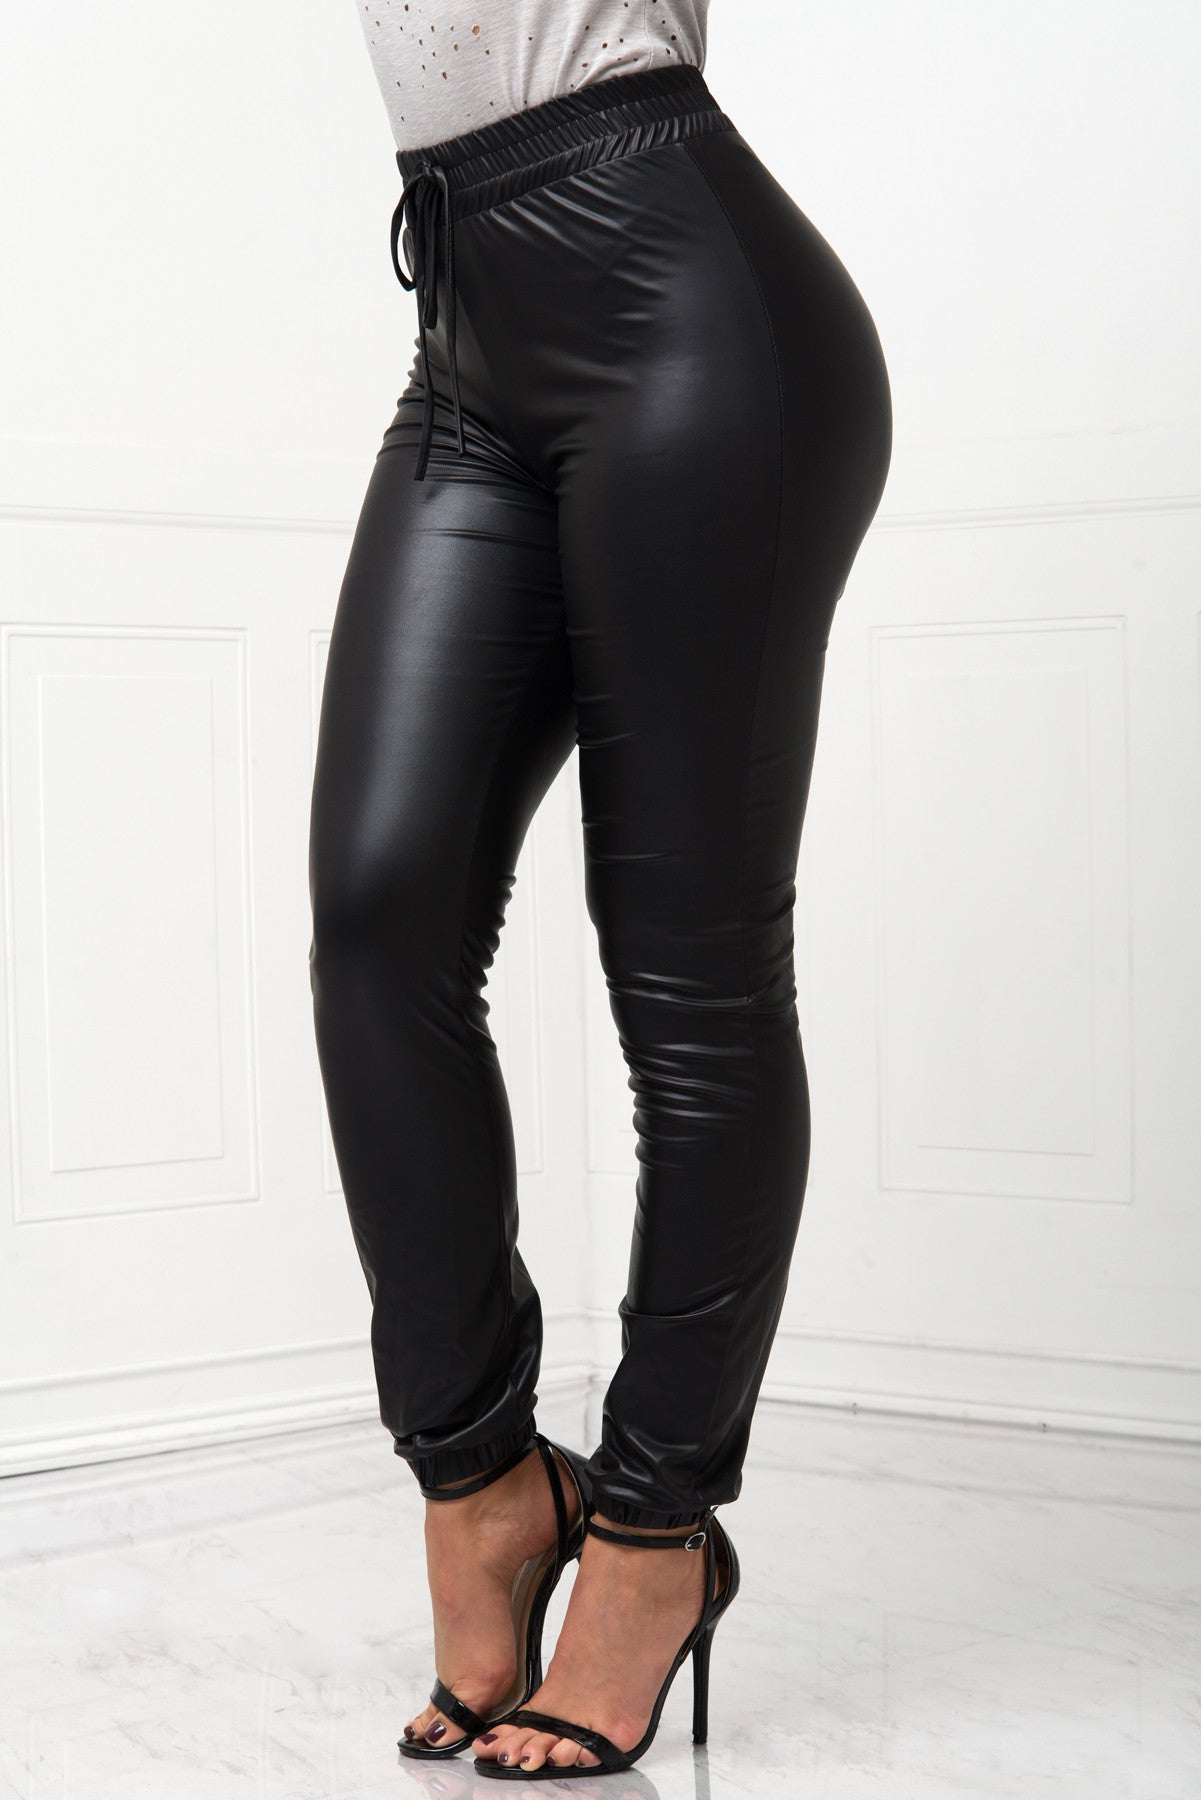 RESTOCK Tish Faux Leather Joggers - Fashion Effect Store  - 2